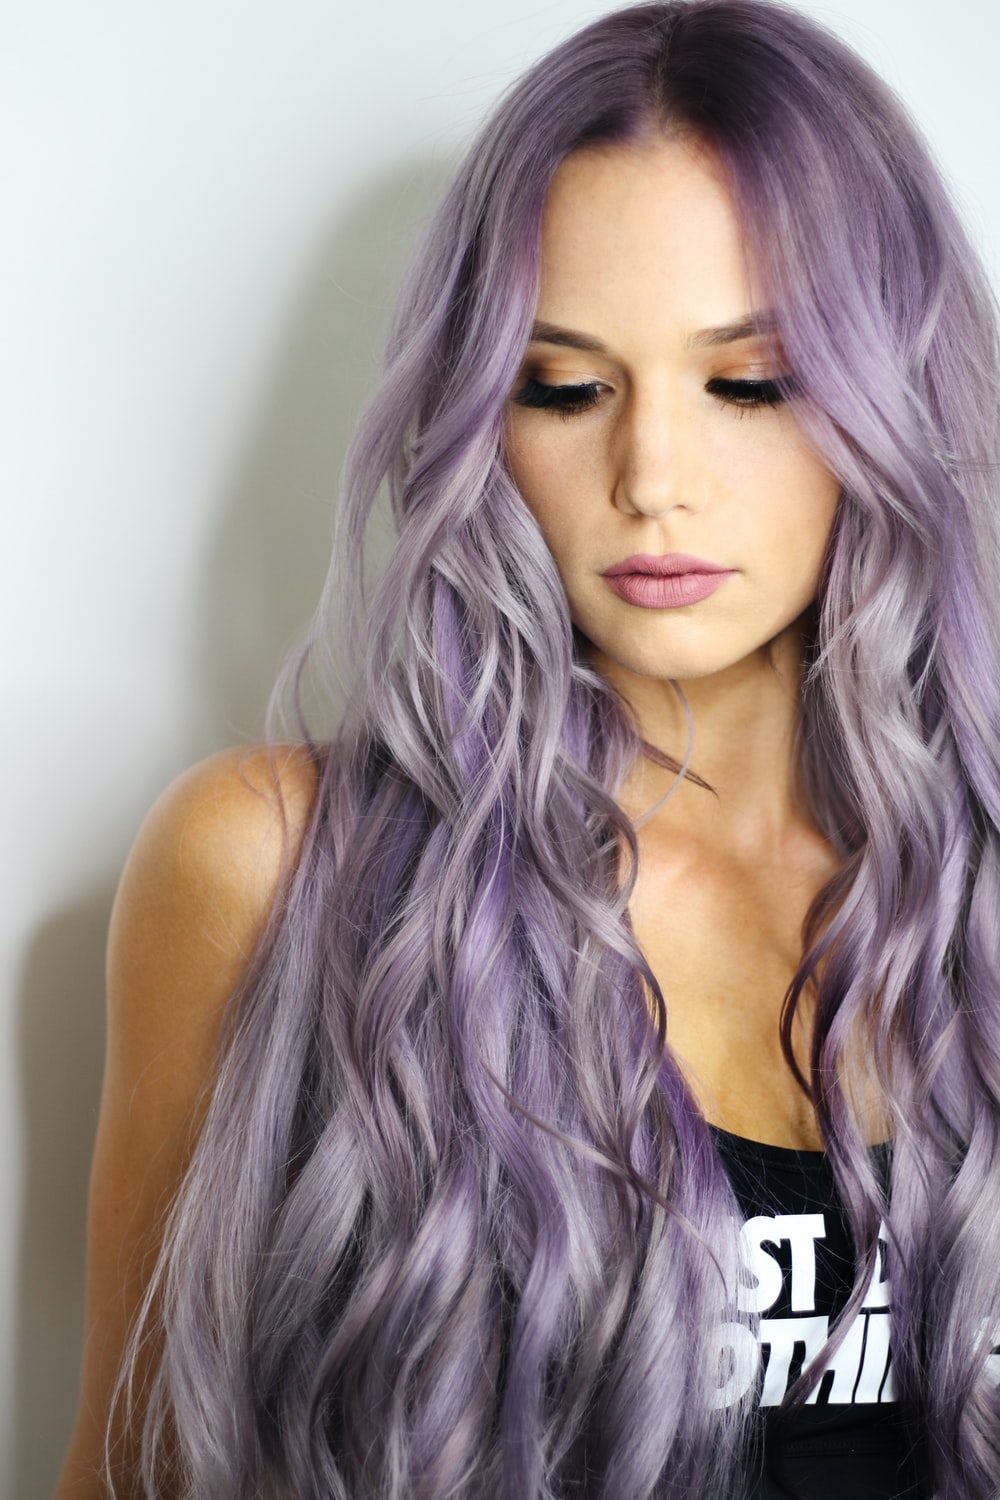 purple haired woman in black top leaning on wall